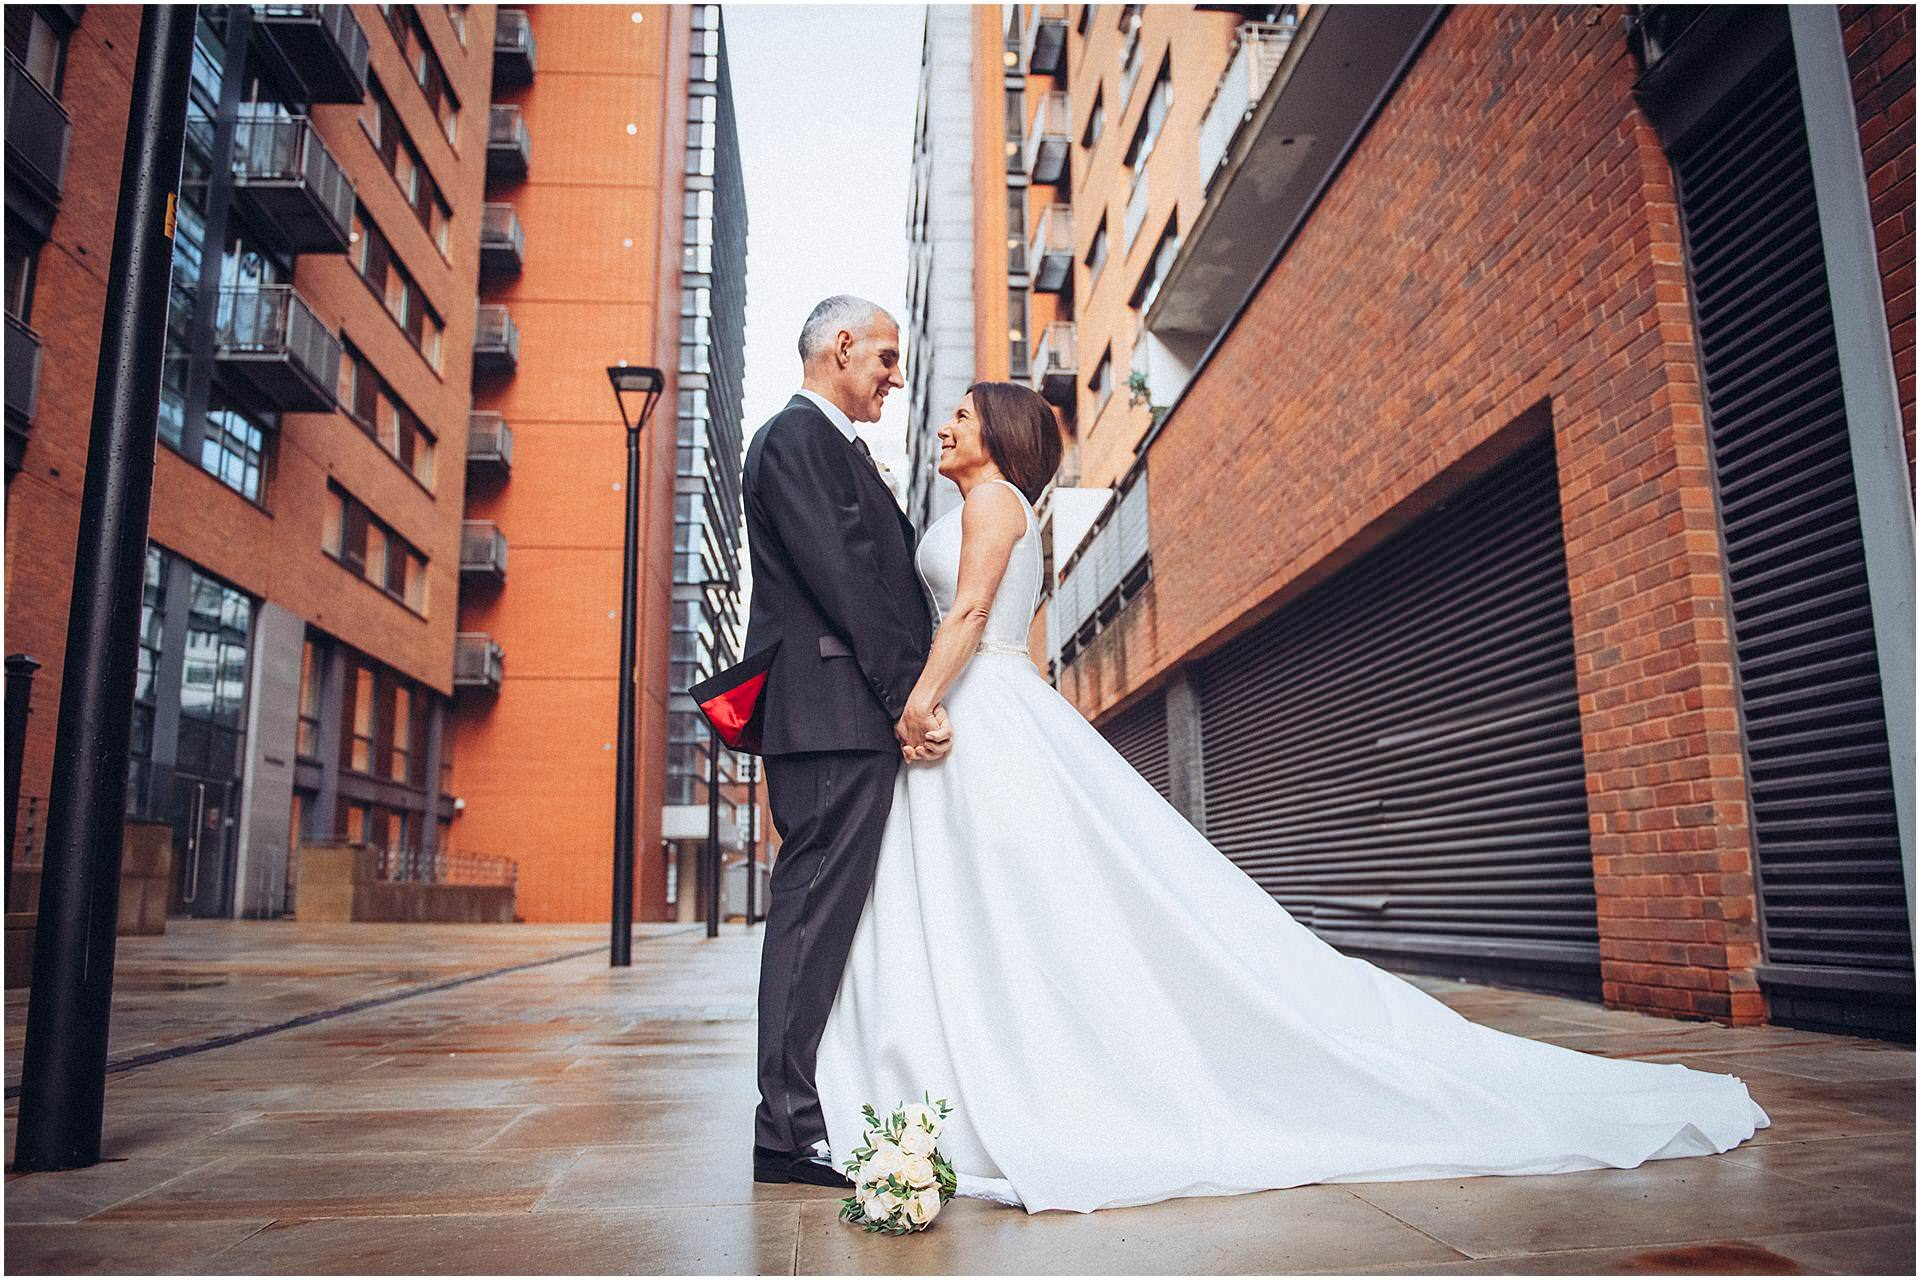 wedding_packages_with_sarah_bee_photography_manchester_wedding_photographer_lancashire_wedding_photographer, great_john_street_hotel_manchester_2426.jpg